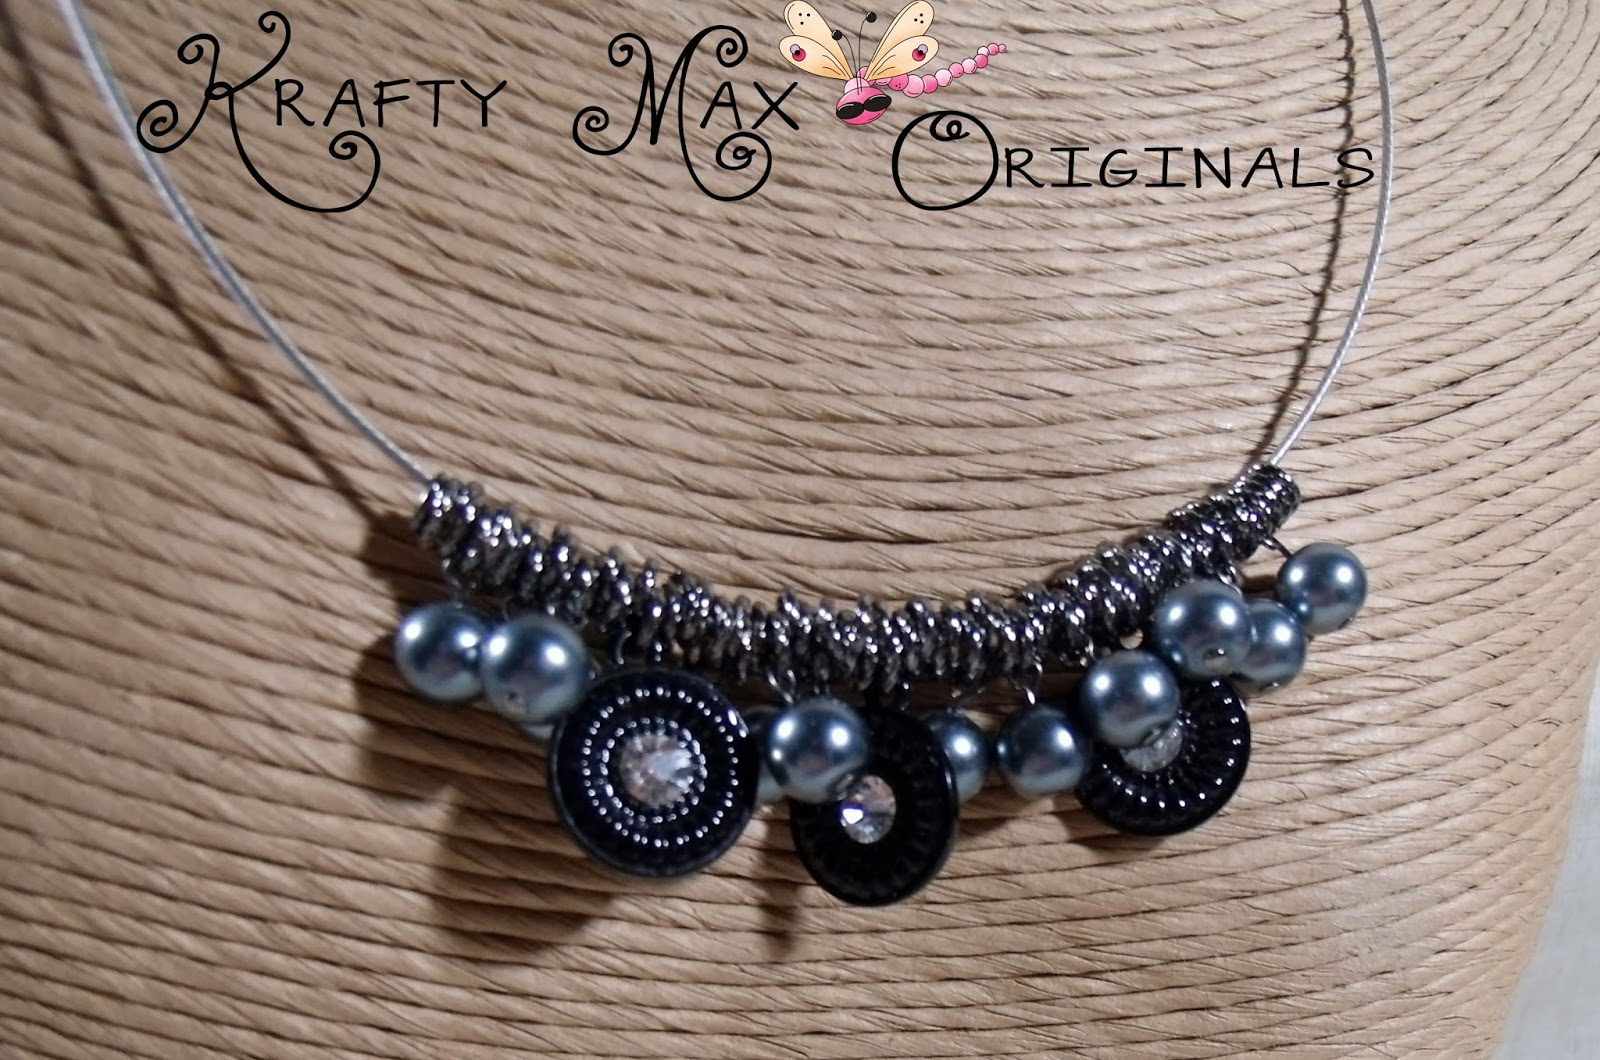 http://www.artfire.com/ext/shop/product_view/KraftyMax/8255624/black_and_grey_prima_beads_blog_team_necklace_-_a_krafty_max_original_/handmade/jewelry/necklaces/glass